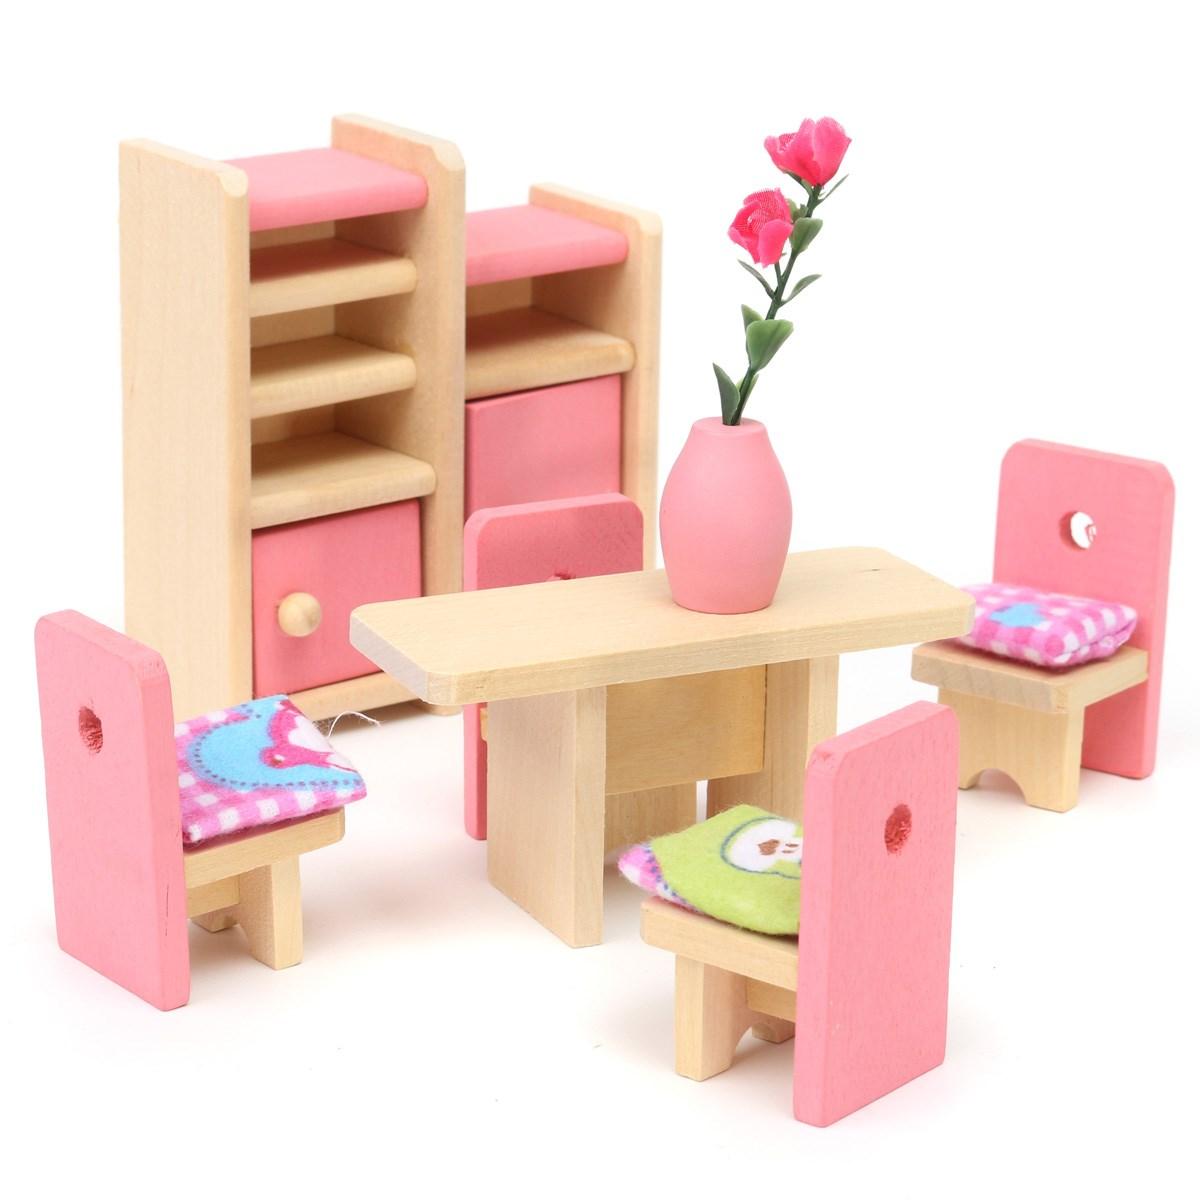 Image result for furniture kids toys